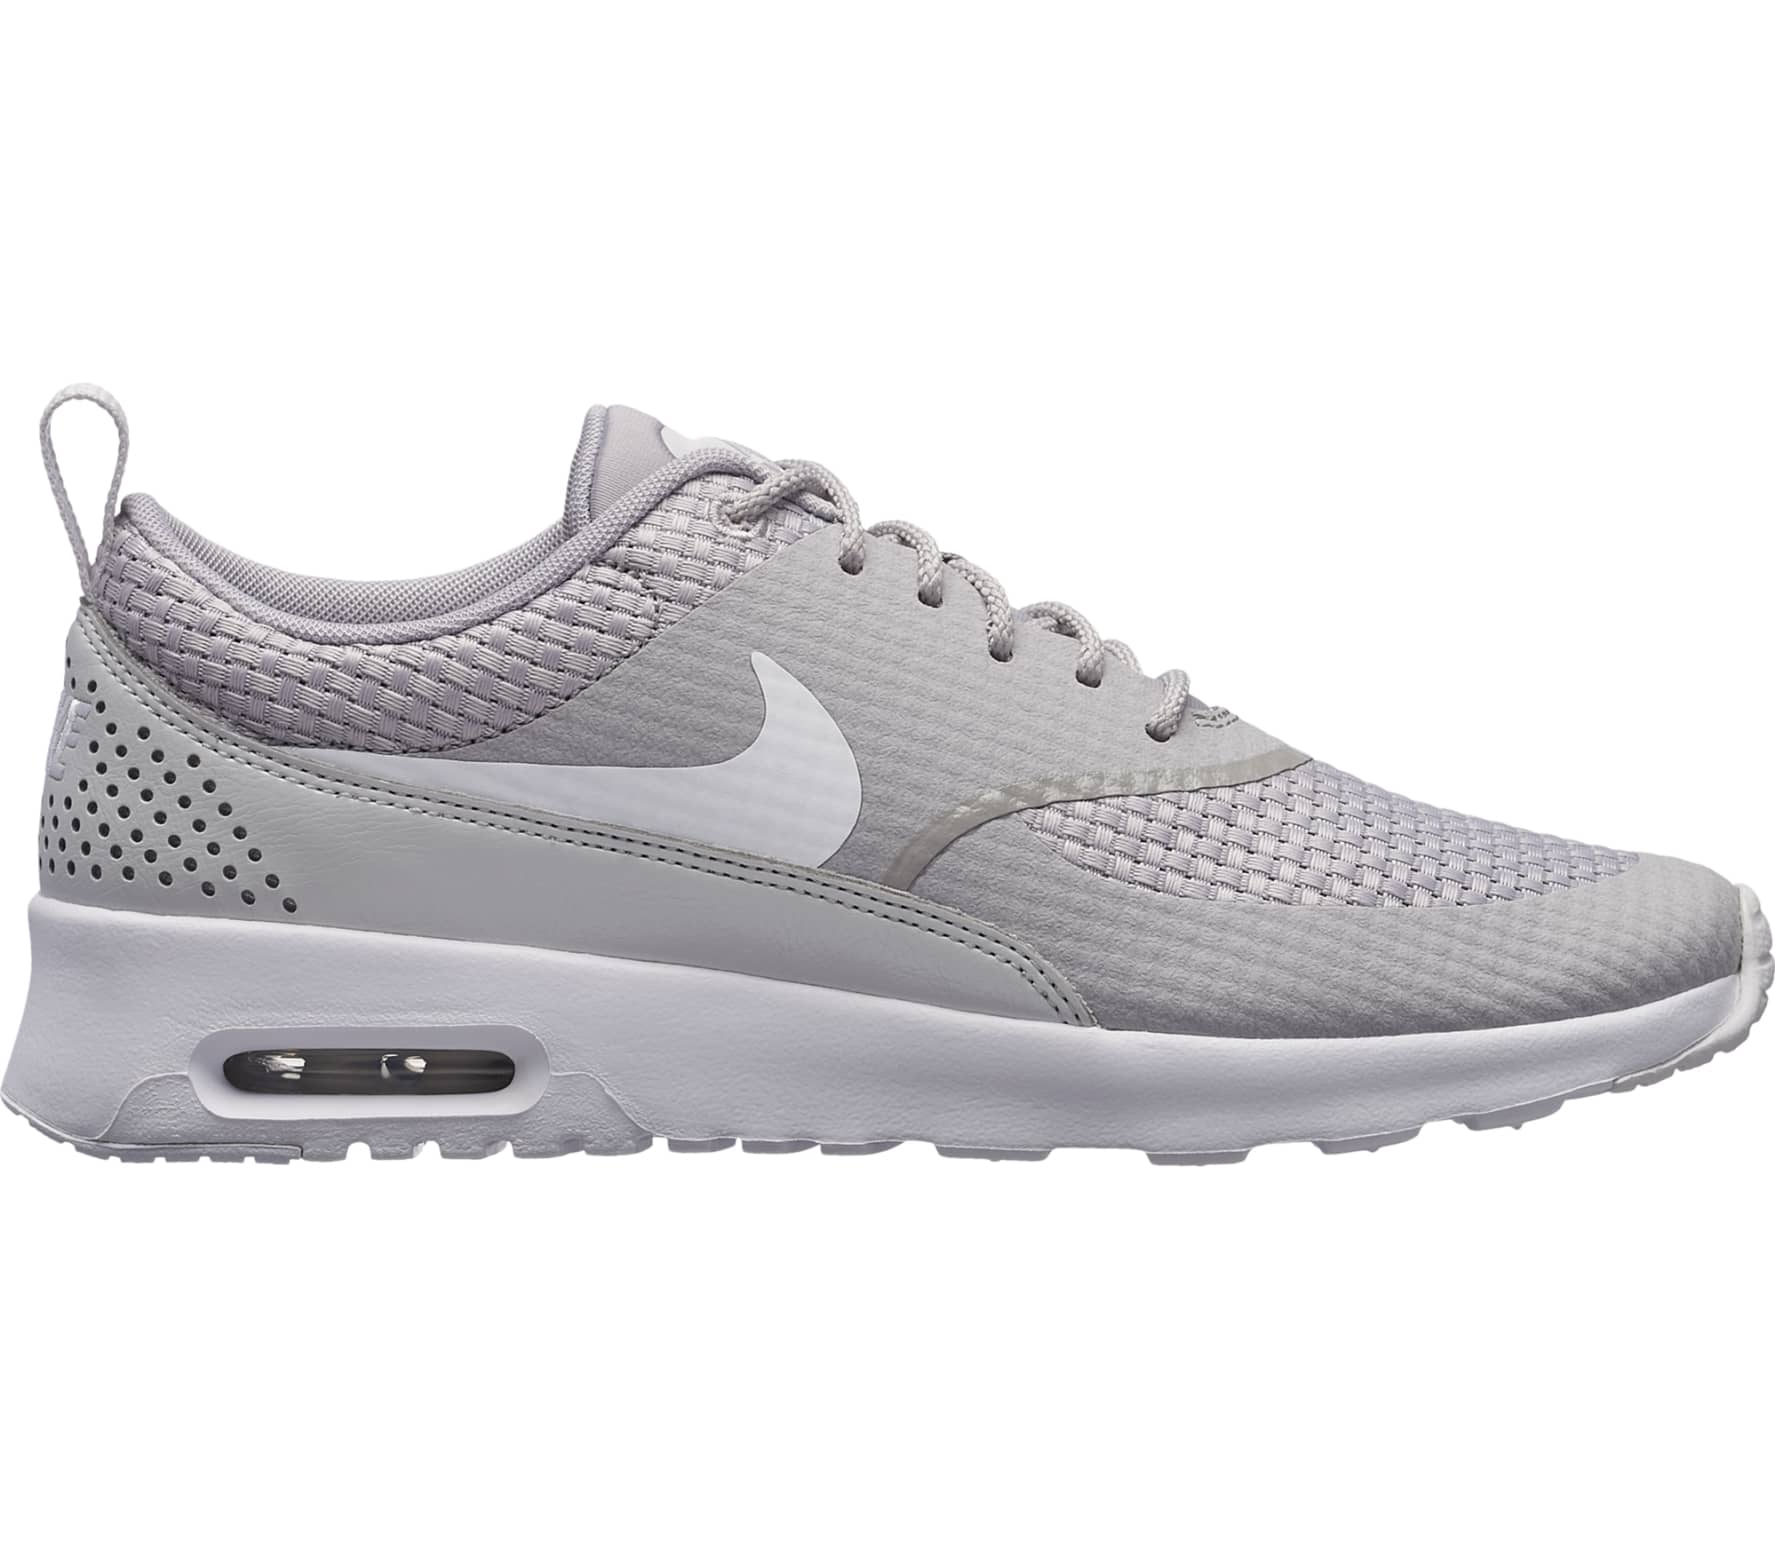 premium selection bb754 7b7cd Nike - Air Max Thea Premium women s running shoes (light grey white)